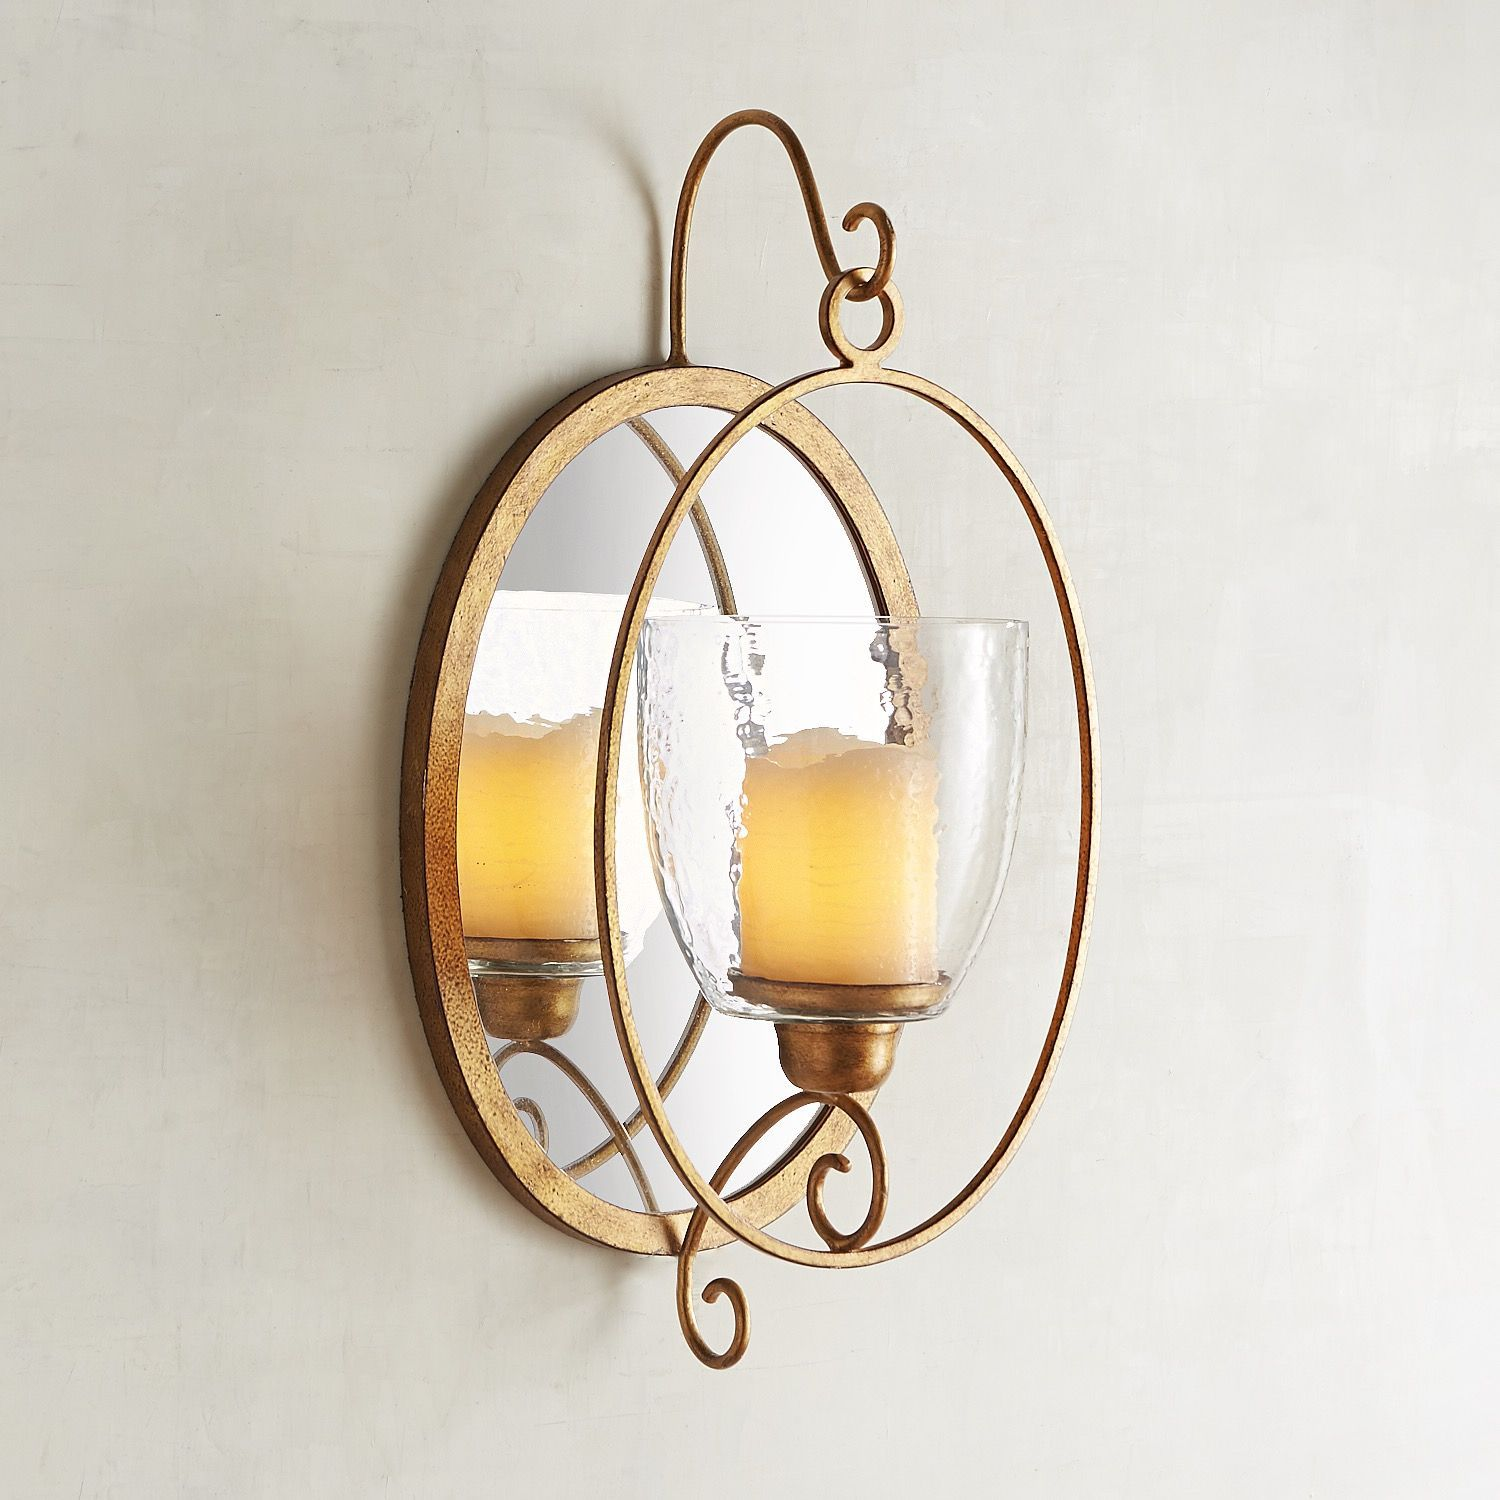 Oval Mirror Candle Wall Sconce Mirror Candle Wall Sconce